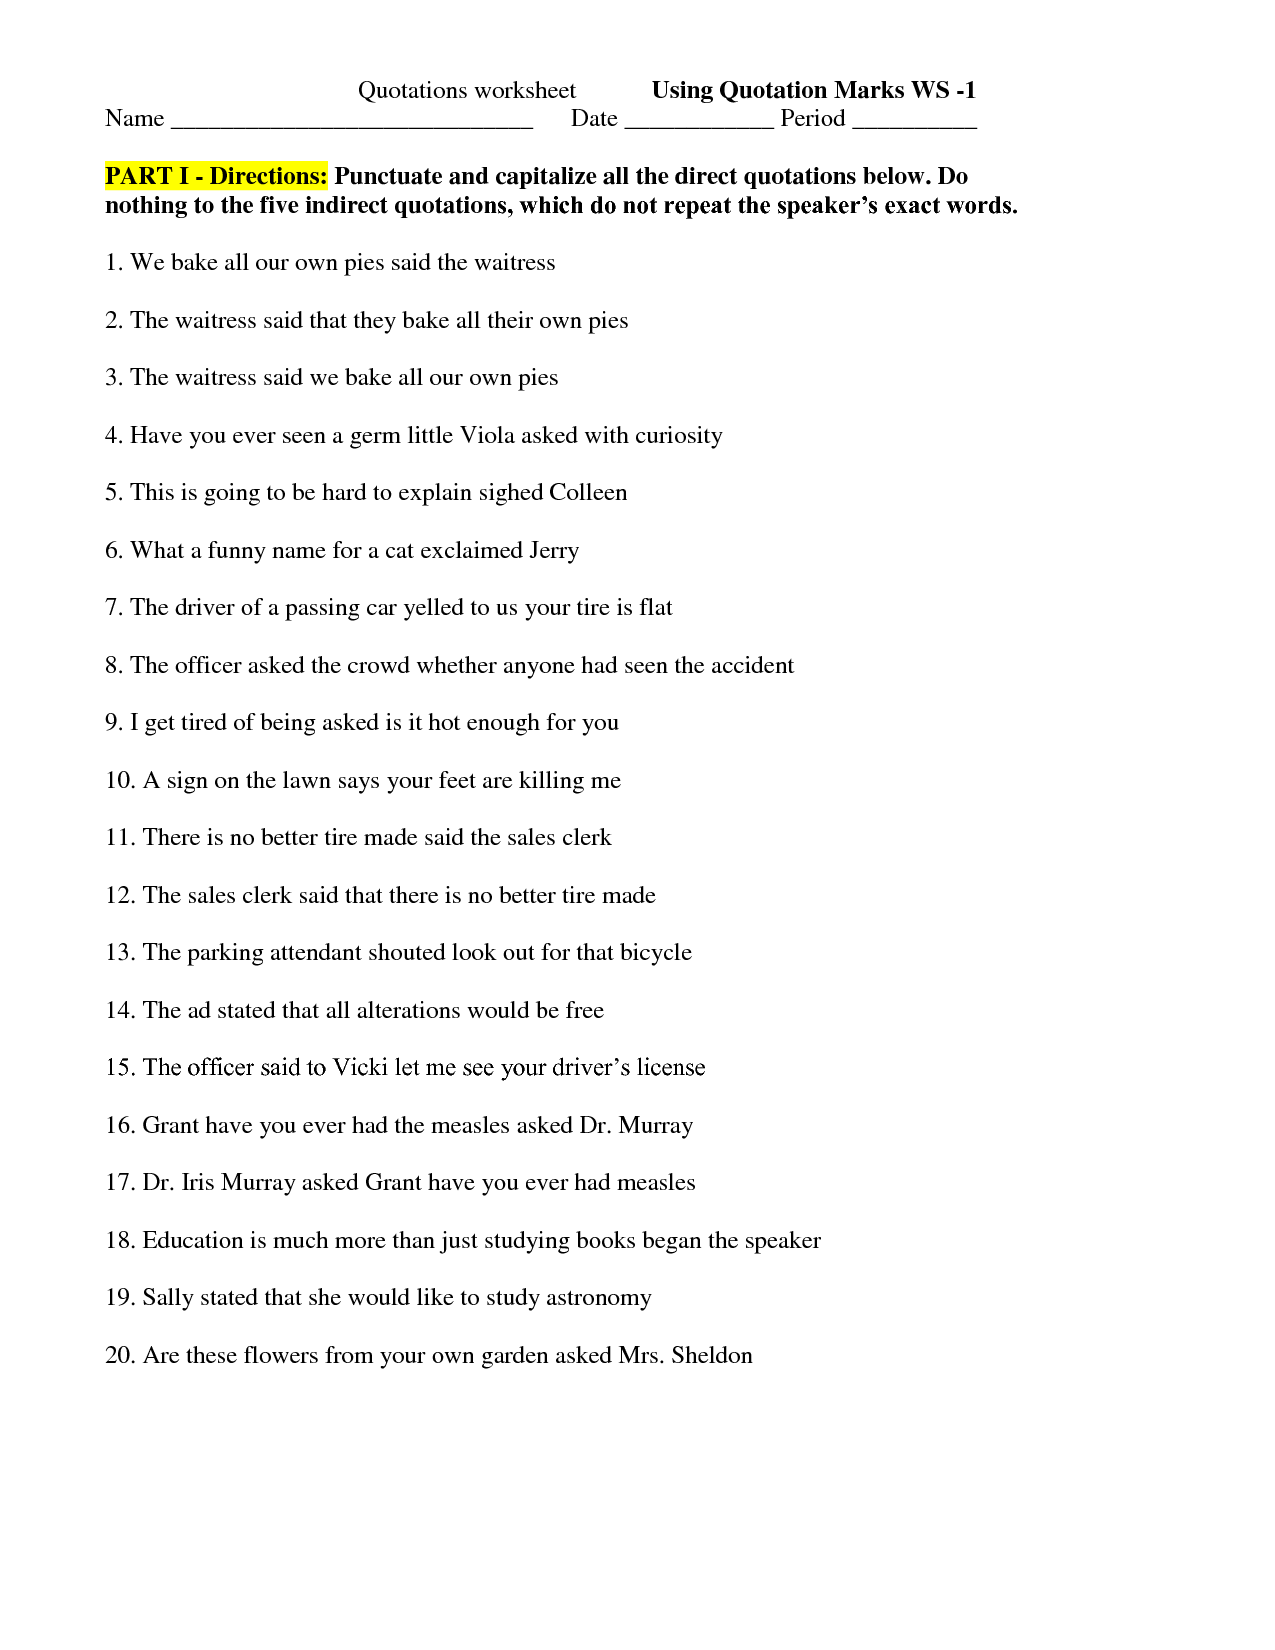 worksheet Punctuation Marks Worksheets quotations worksheet templates and worksheets quotation marks worksheetsworksheets